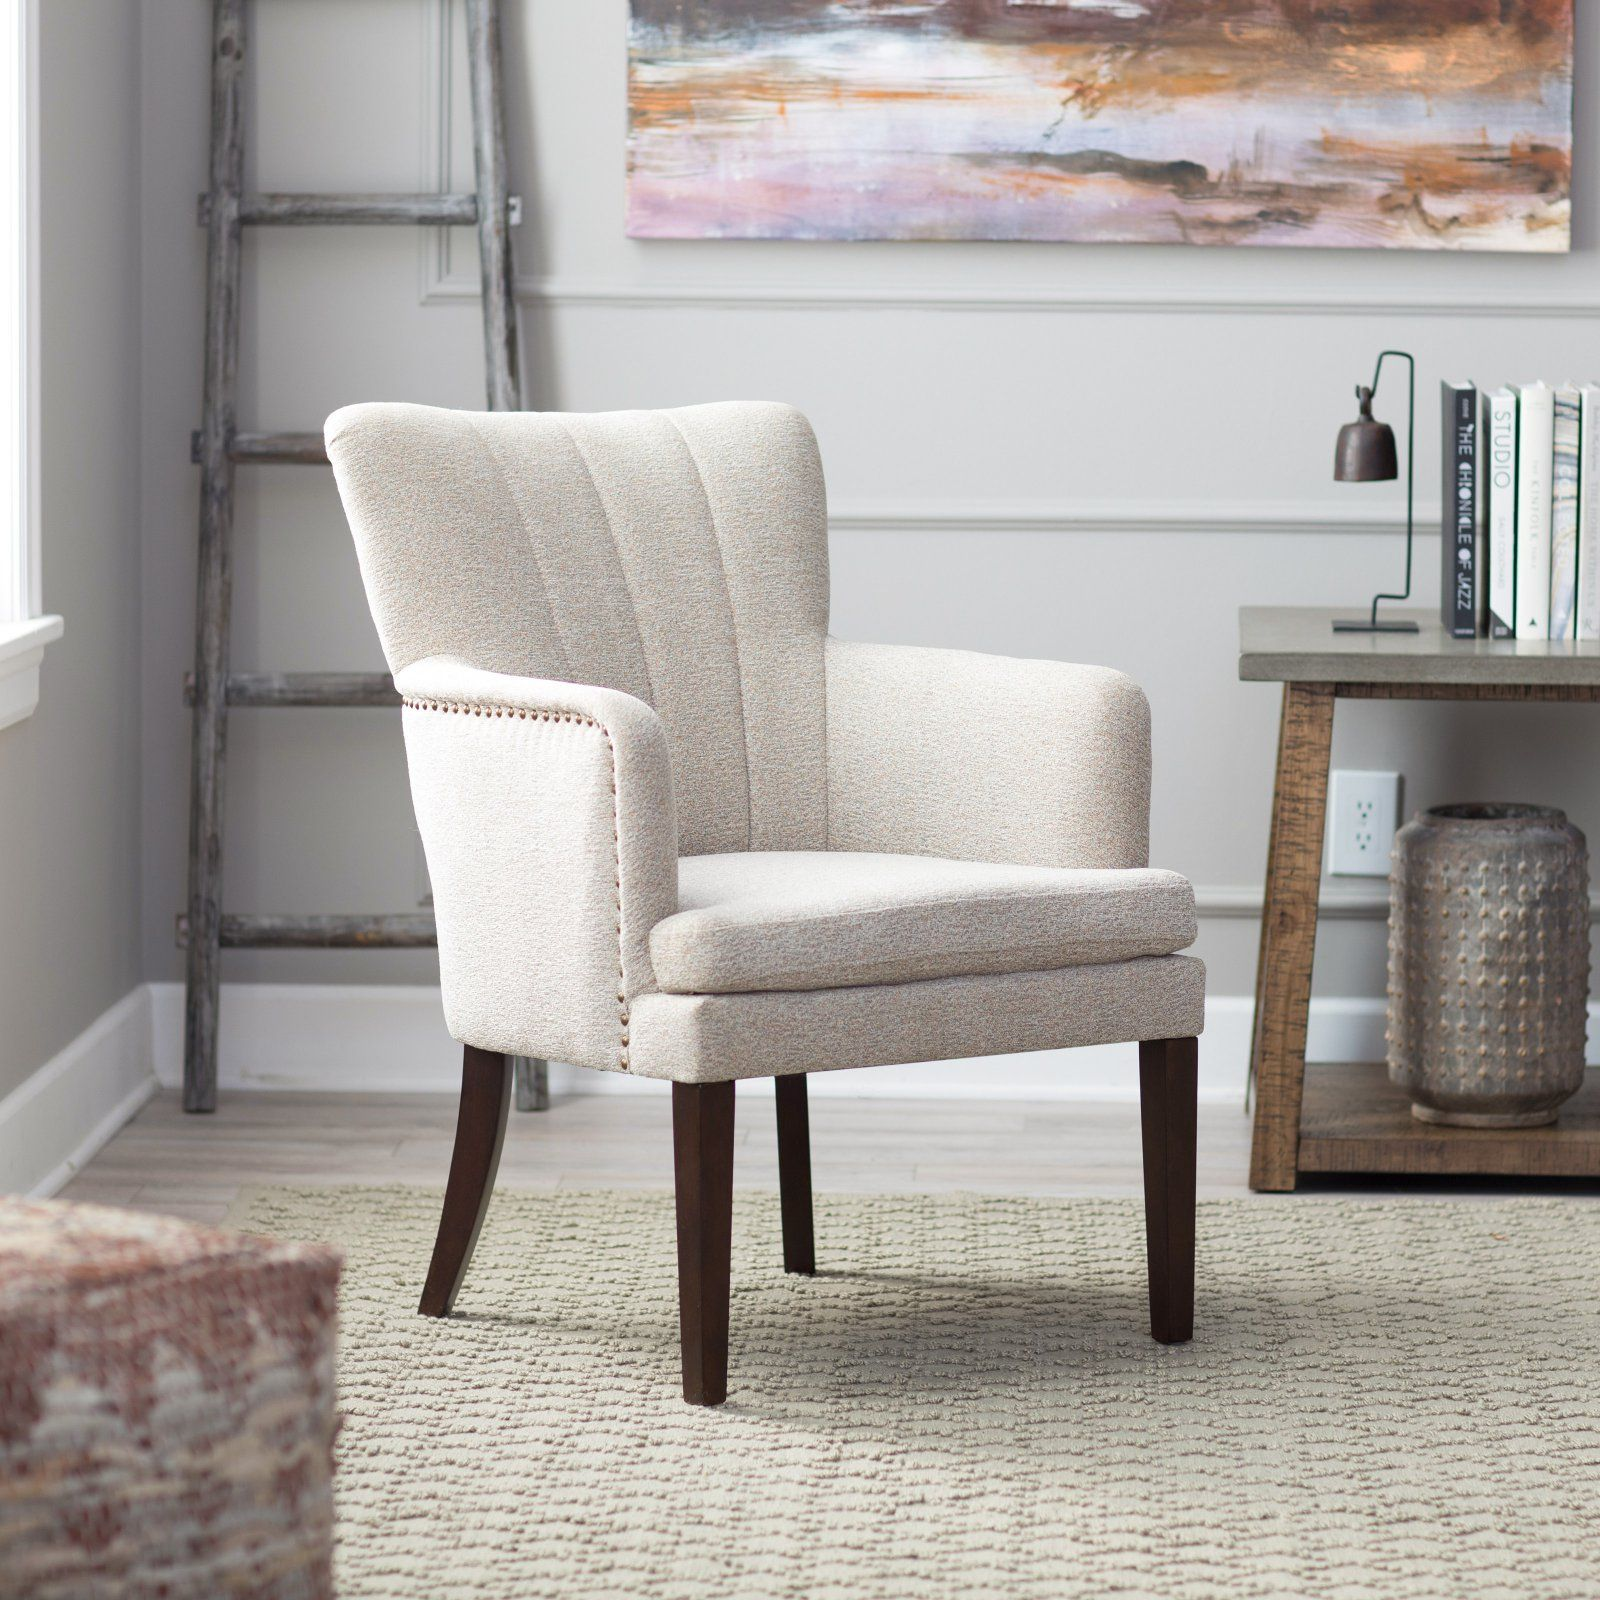 Terrific Belham Living Kelly Accent Chair Tan In 2019 Products Caraccident5 Cool Chair Designs And Ideas Caraccident5Info